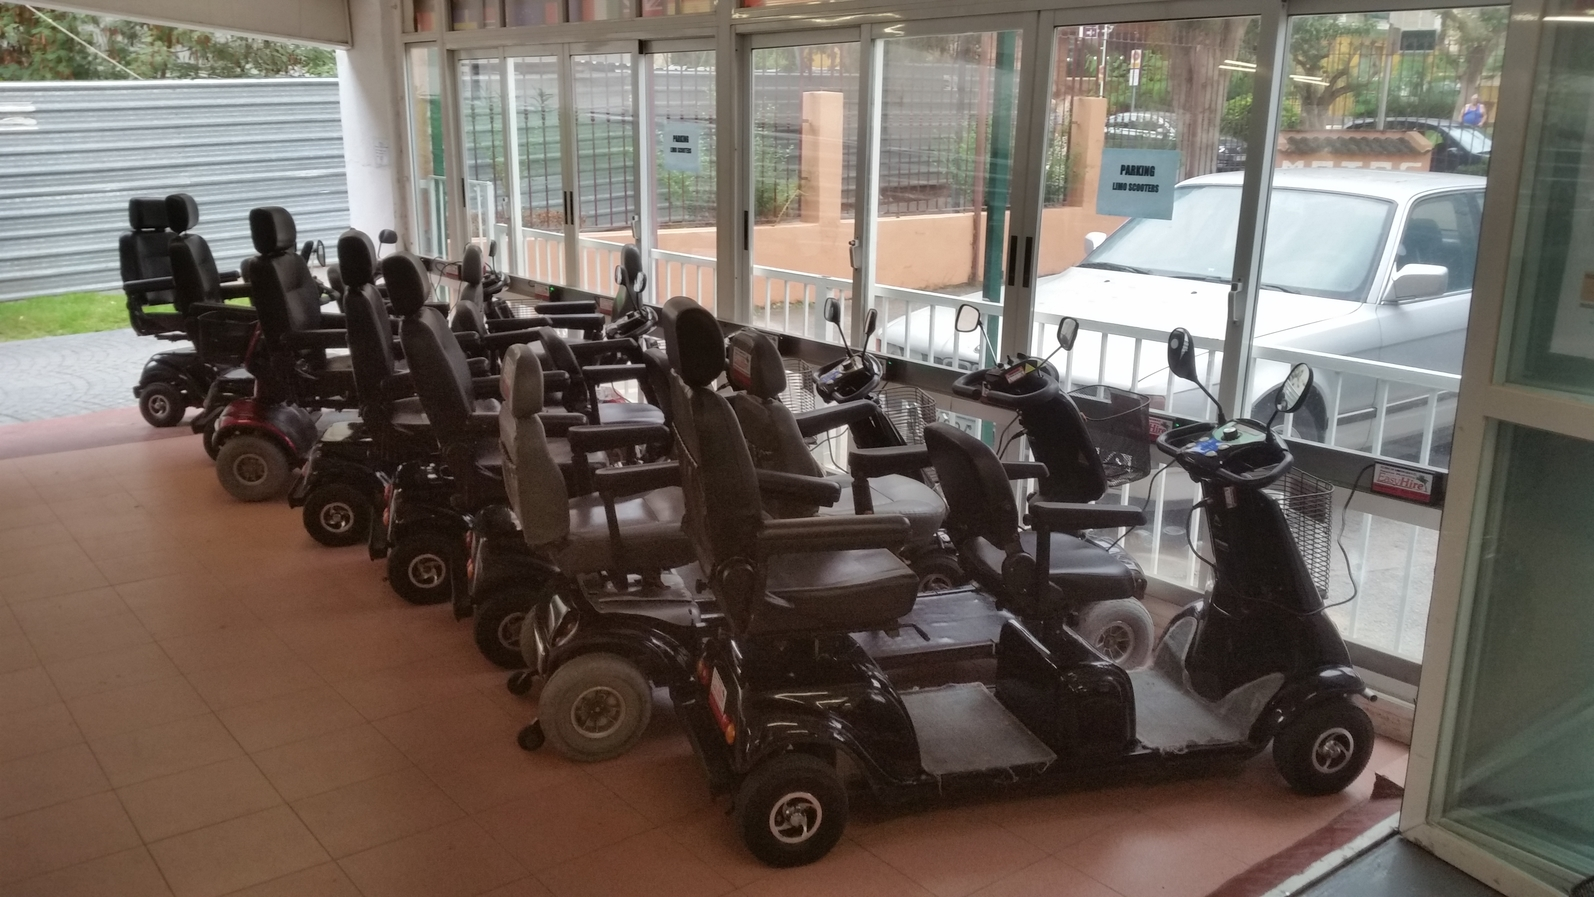 wheelchair hire bali white cotton chair covers free park and charge mobility scooter in benidorm easyhire 1